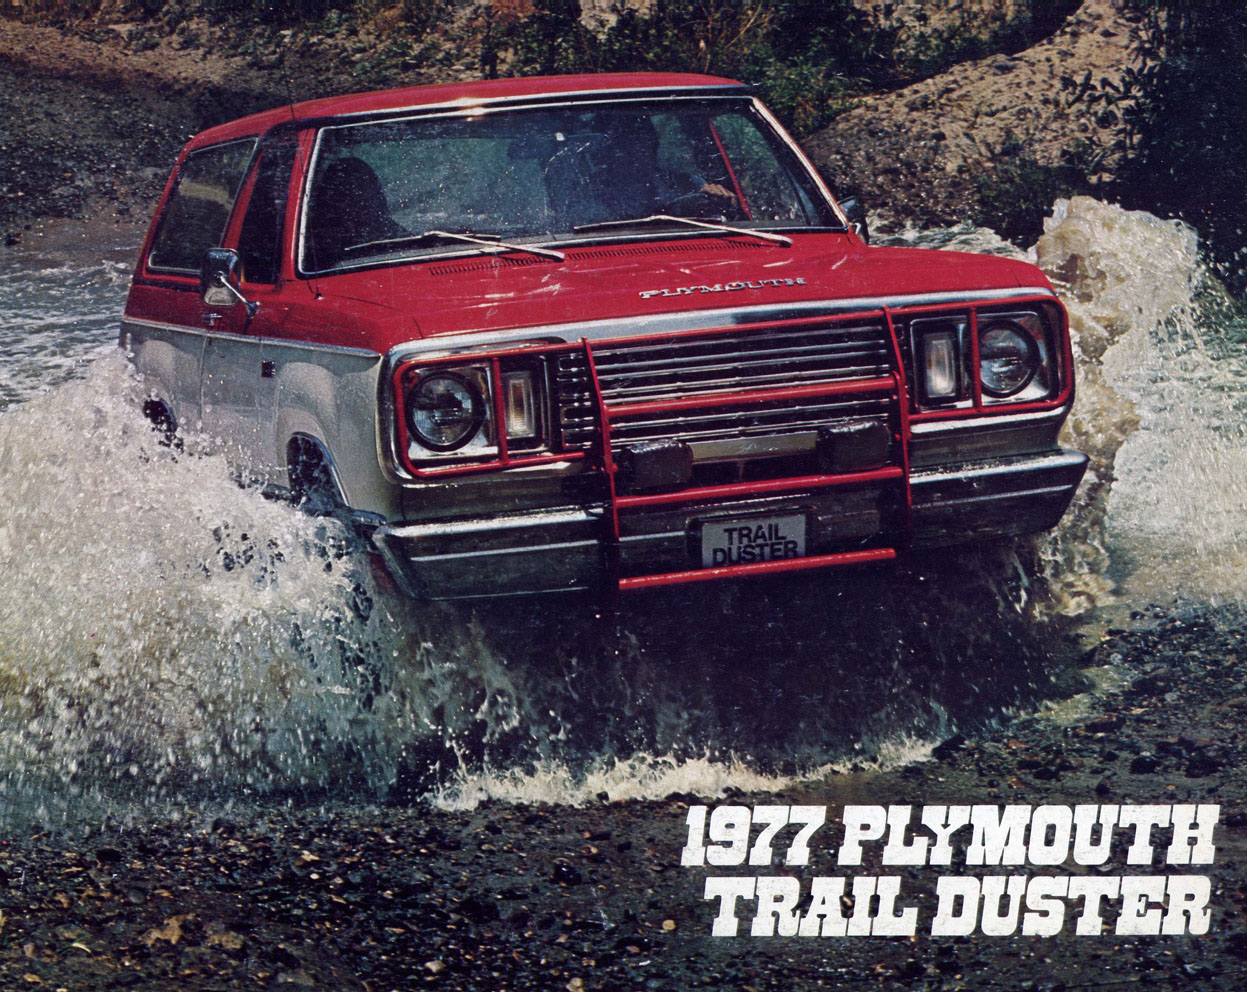 1977 Plymouth Trail Duster #2